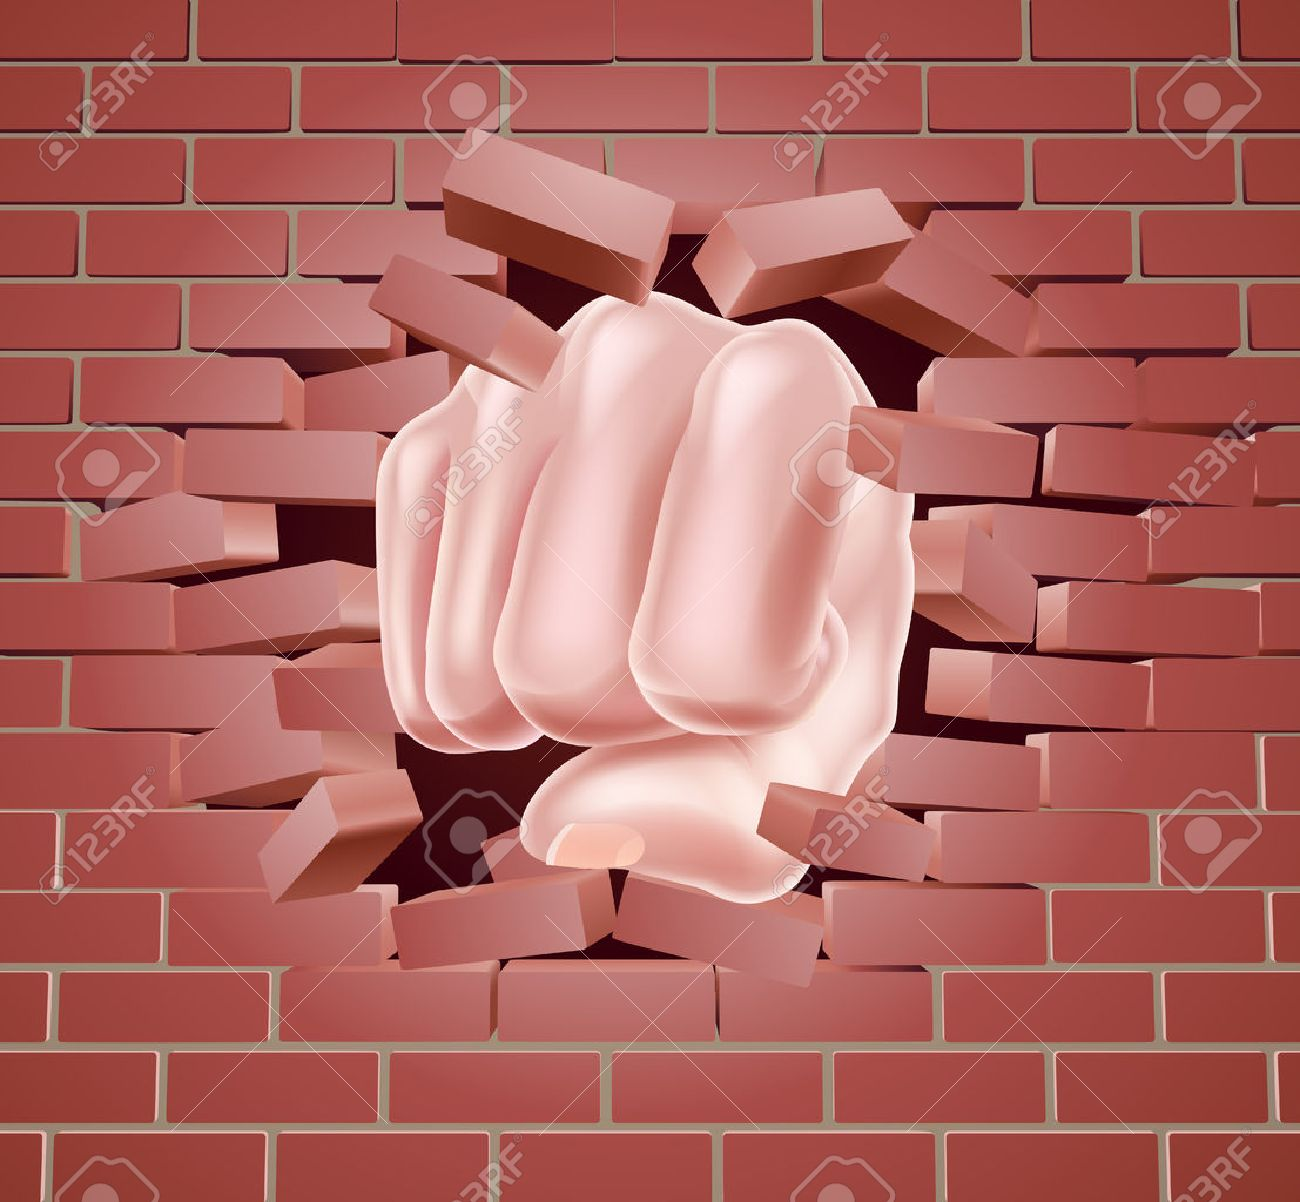 Breaking Through Brick Wall Clipart.